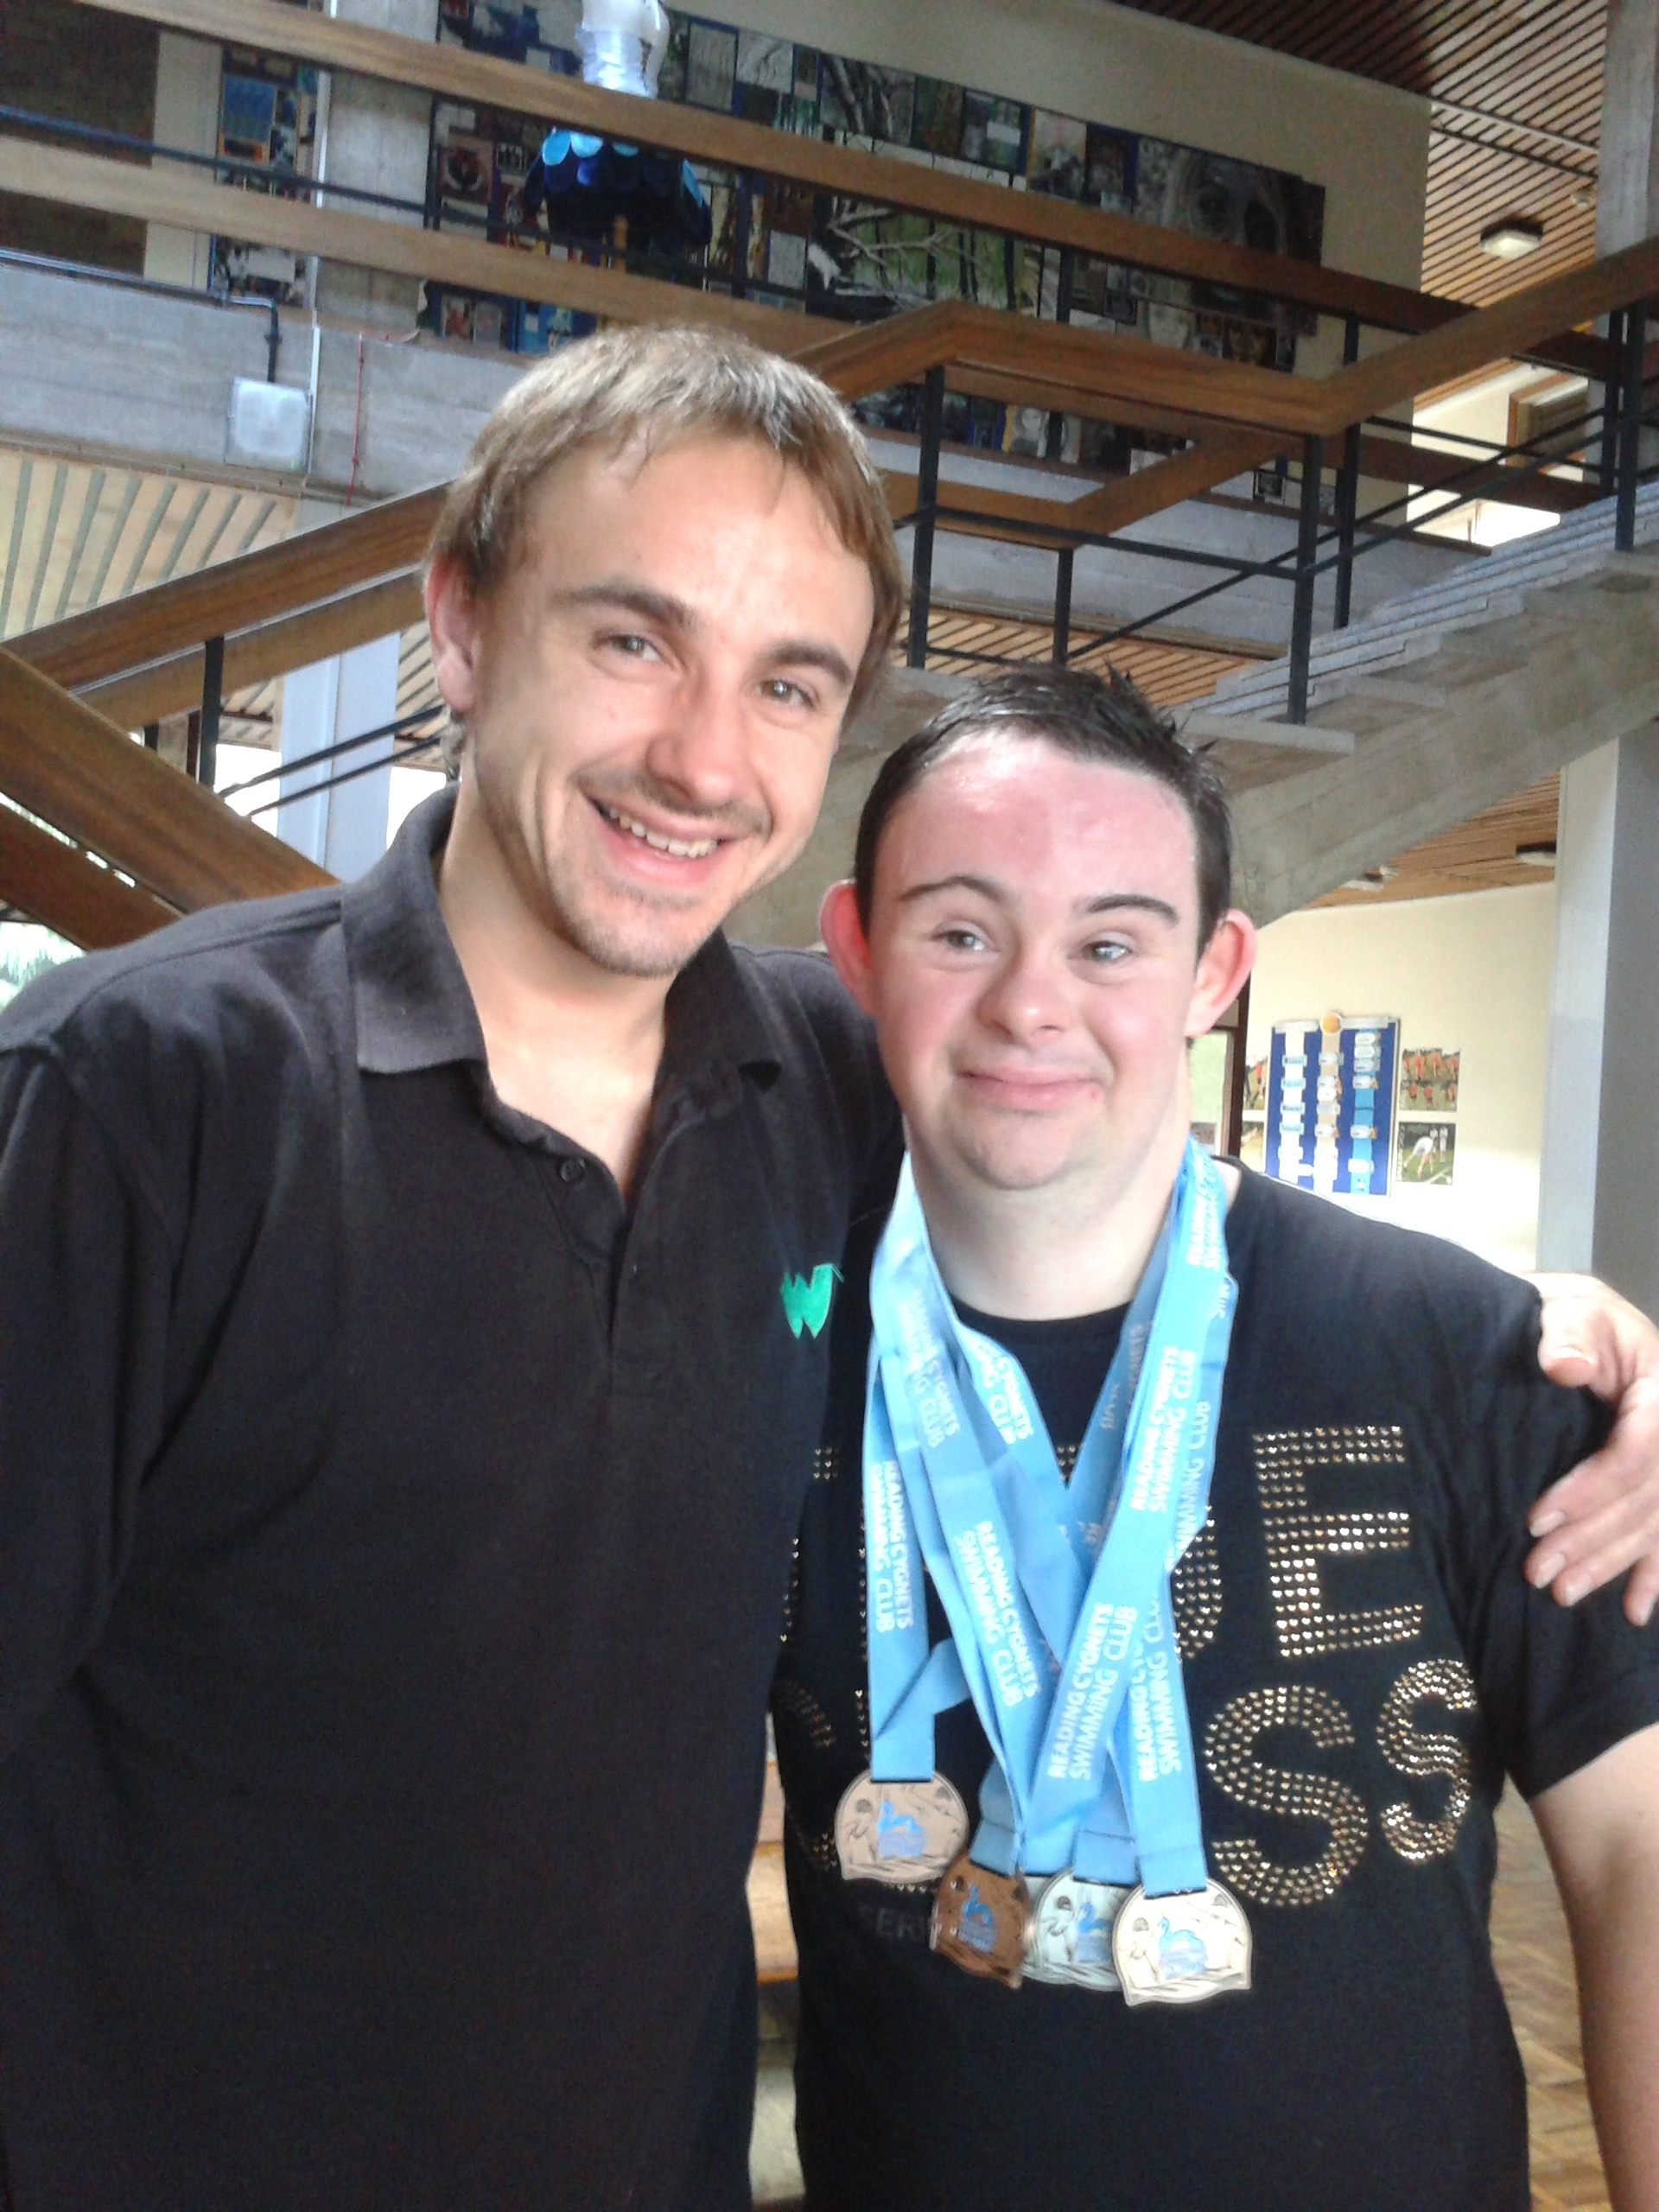 European express: Wyre Forest Swimming Club head coach Mark Wilmott with Steve Boyce and his medal haul.